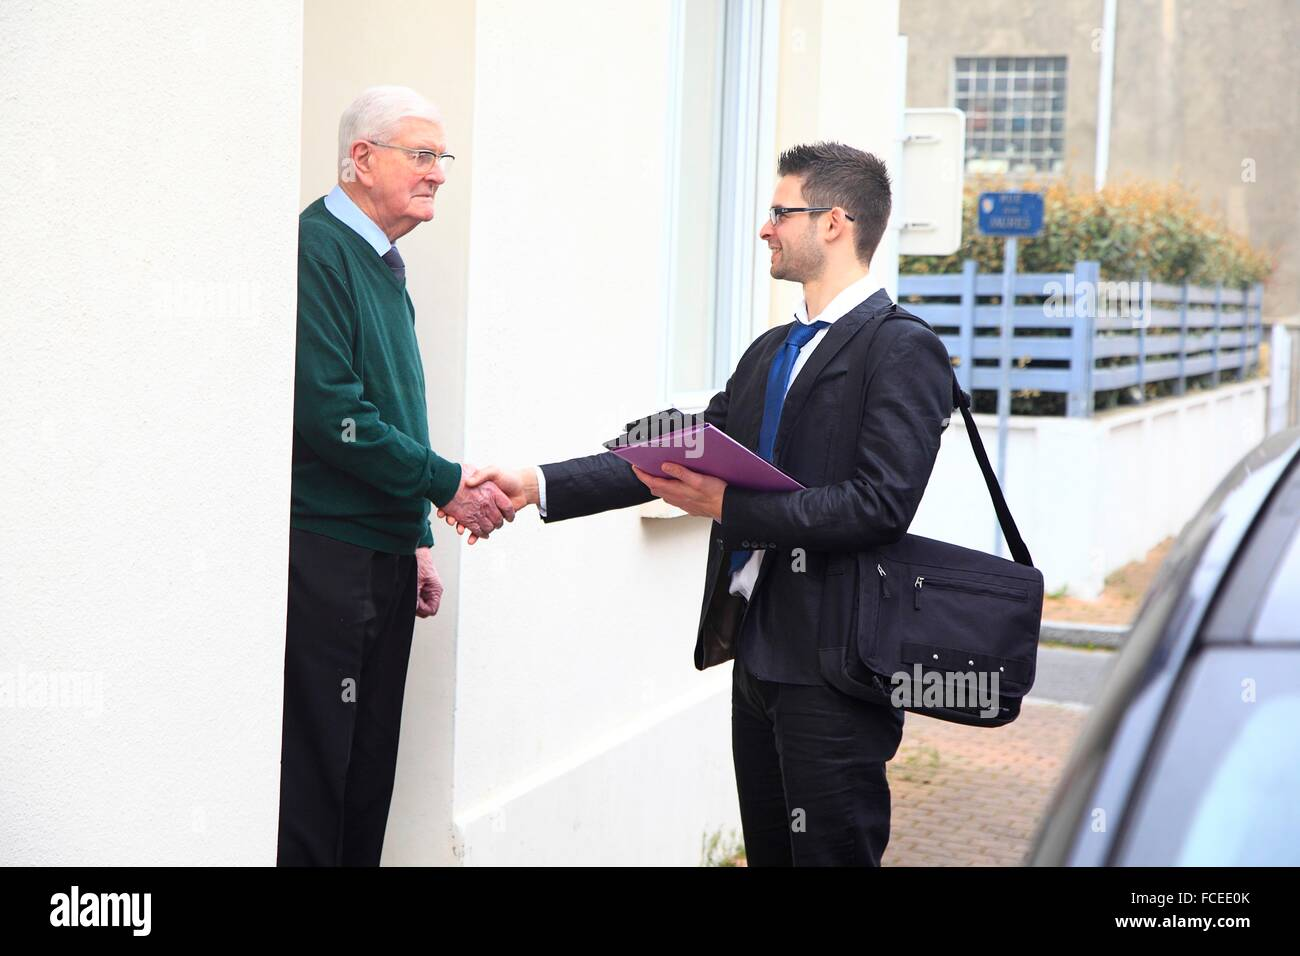 France canvassing at the main door - Stock Image  sc 1 st  Alamy & Canvassing Stock Photos \u0026 Canvassing Stock Images - Alamy